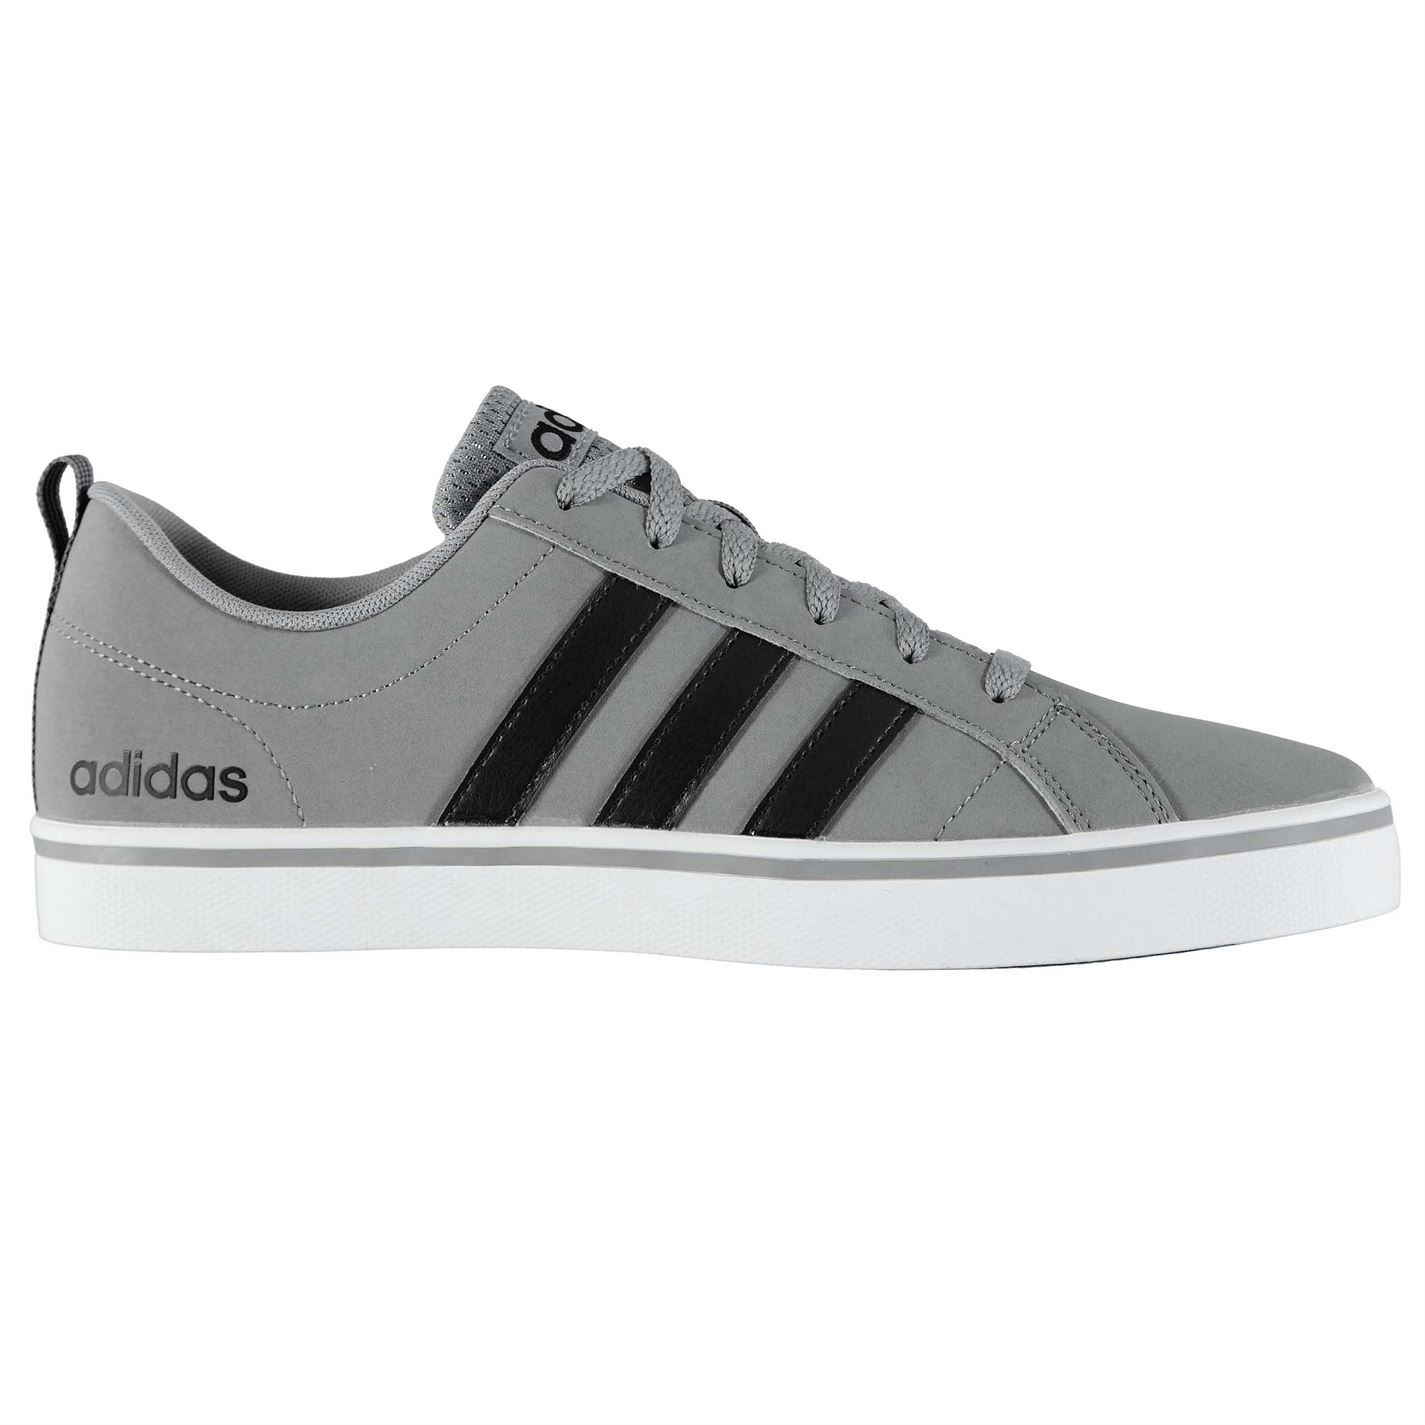 Adidas Pace VS halfshoes | Adidas, Sneakers, Shoes